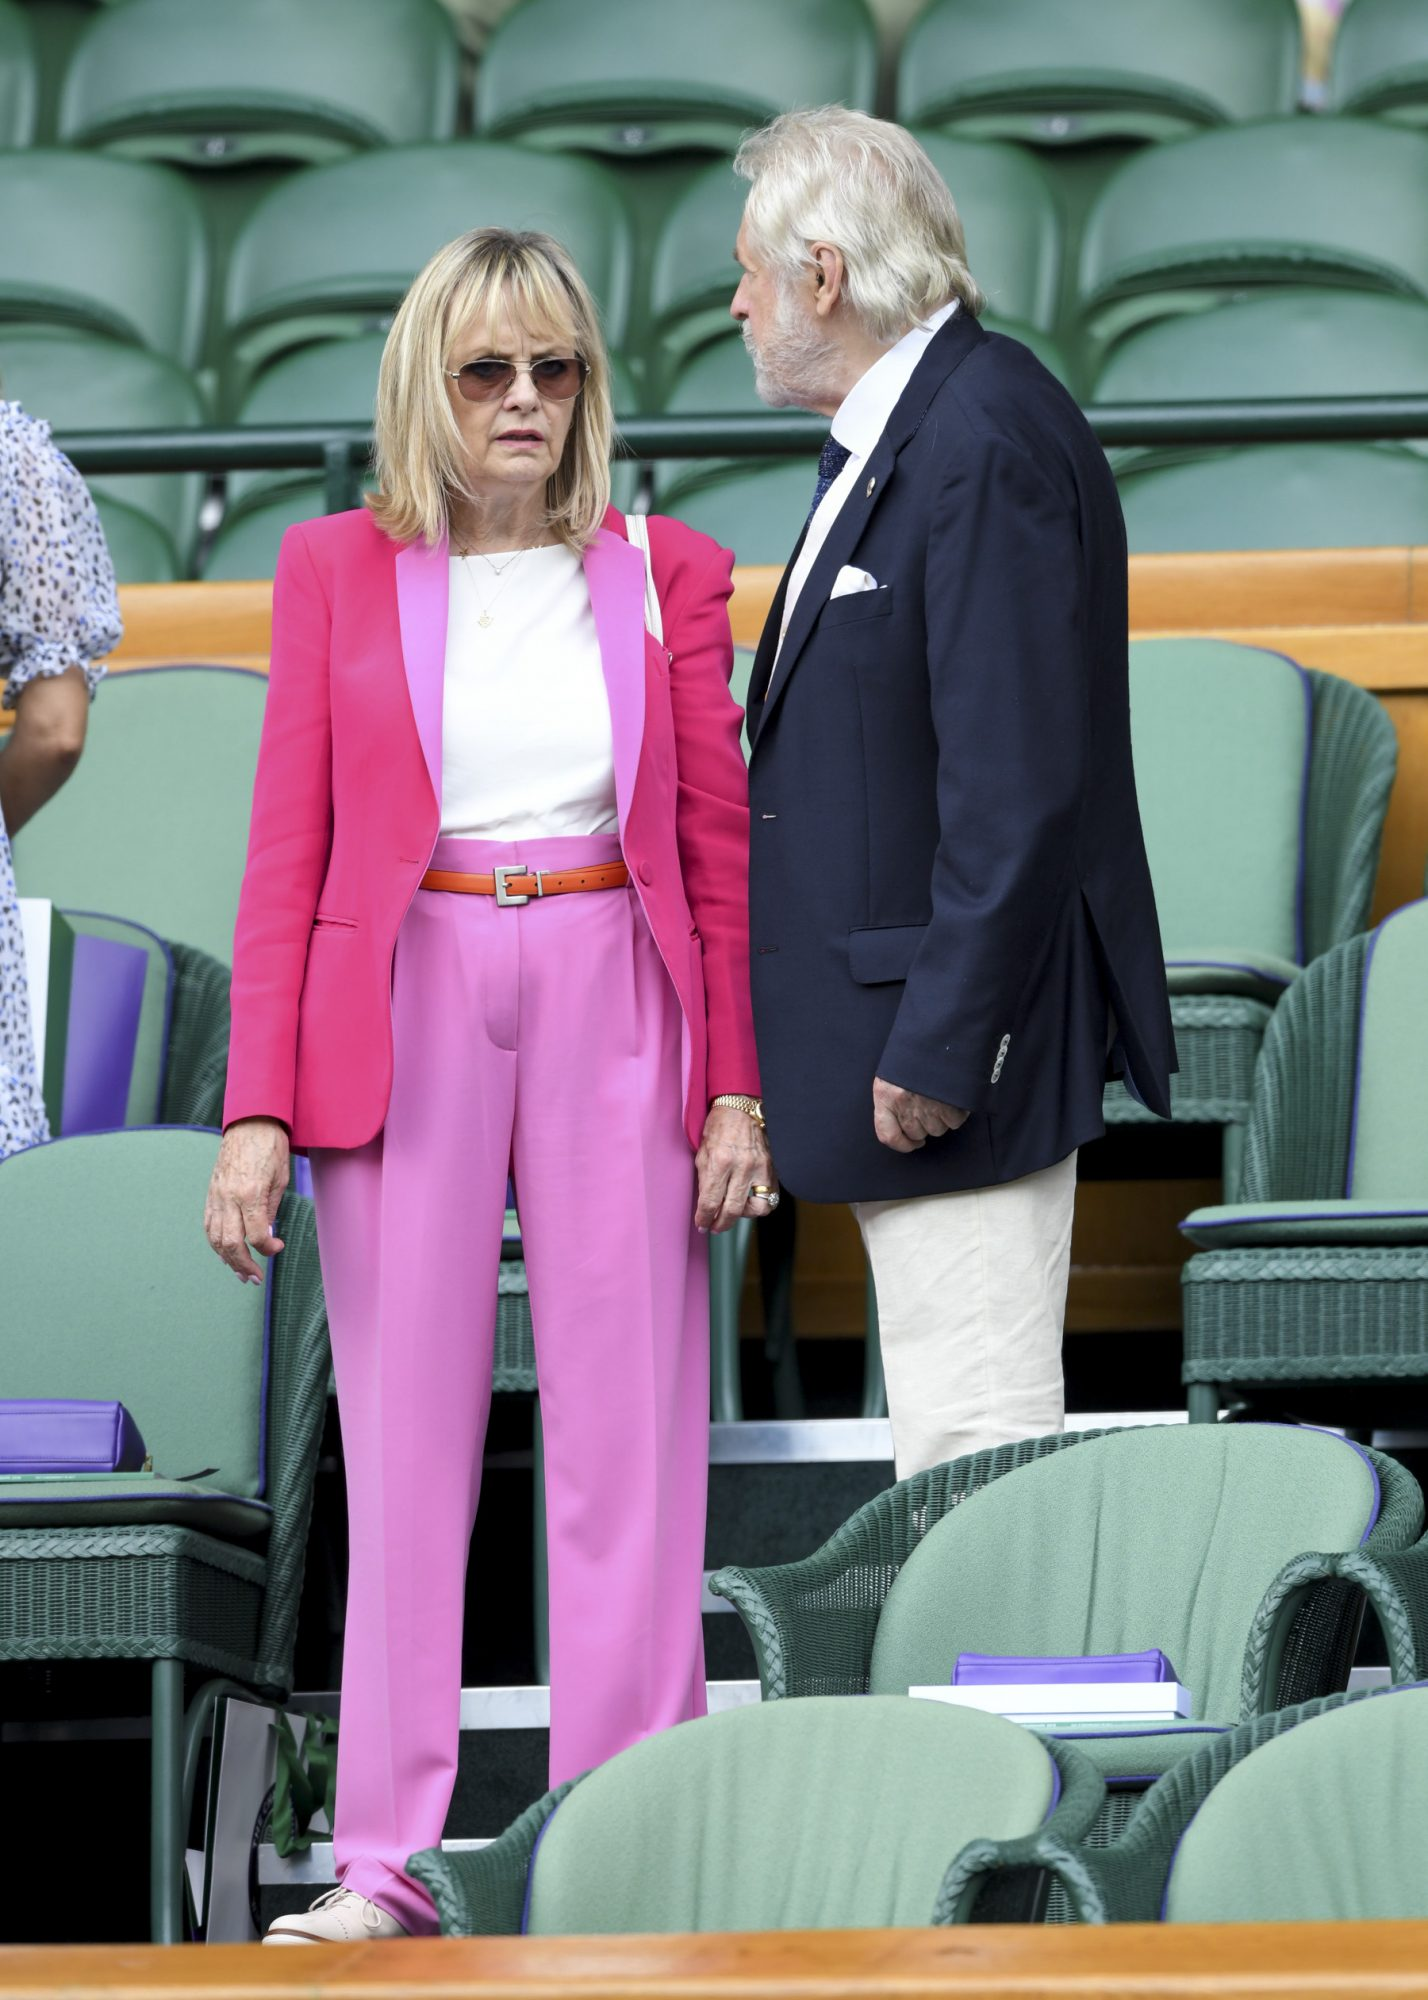 LONDON, ENGLAND - JULY 10: Twiggy and Leigh Lawson attend day nine of the Wimbledon Tennis Championships at All England Lawn Tennis and Croquet Club on July 10, 2019 in London, England. (Photo by Karwai Tang/Getty Images)